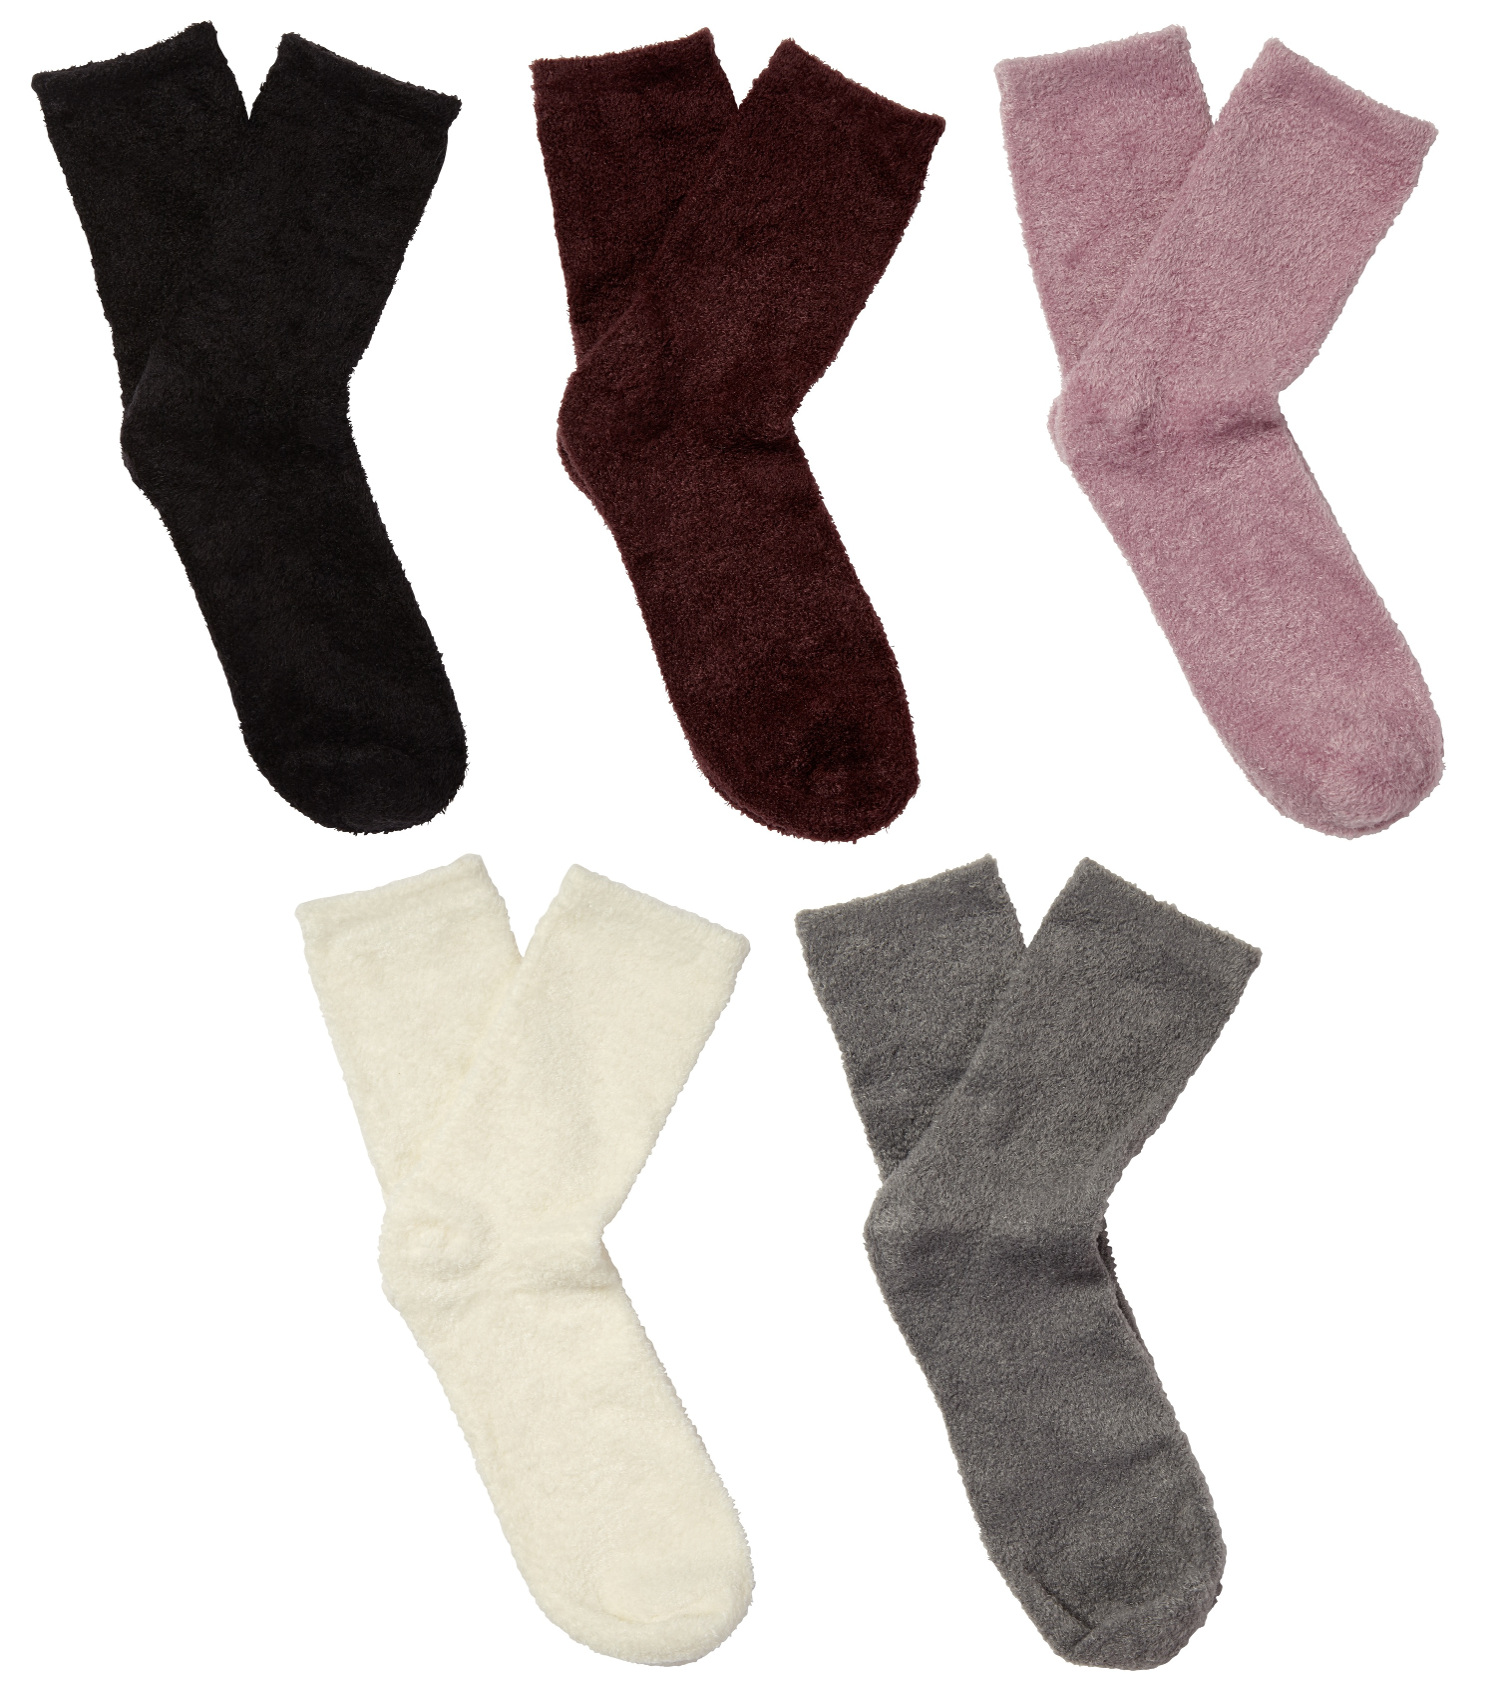 0a62981732e31 Details about Slenderella Ladies Soft Fleece Bedsocks Cosy Nylon Bed Socks  One Size UK 4-7